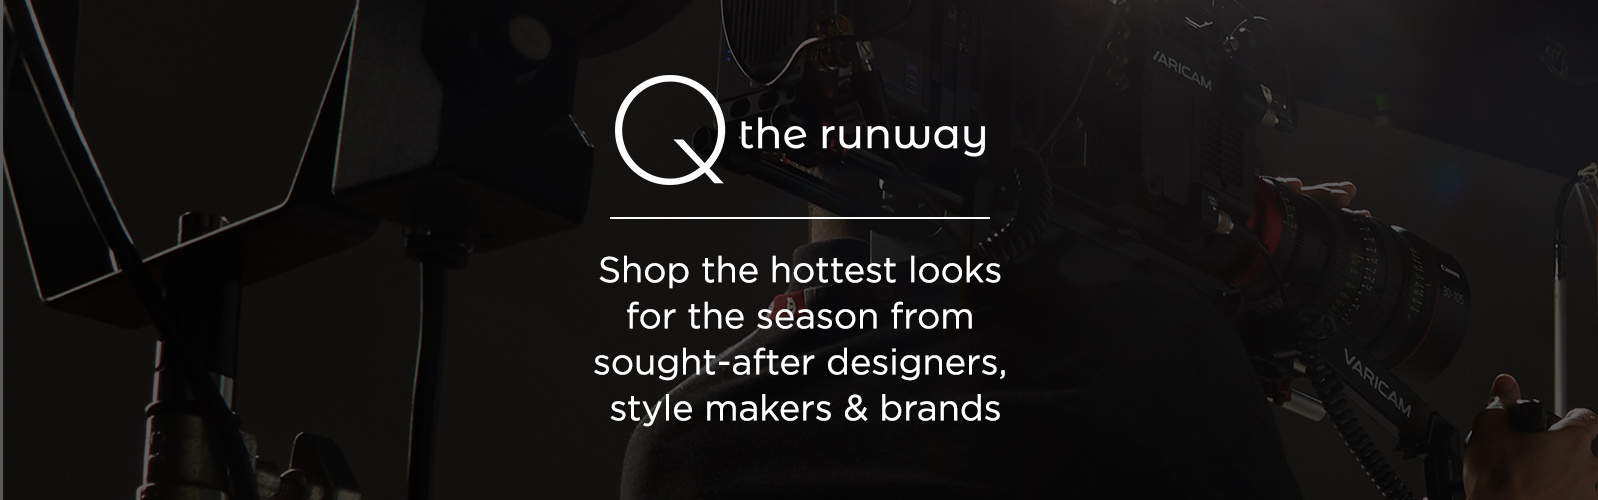 Q the Runway. Shop the hottest looks for the season from sought-after designers, style makers & brands